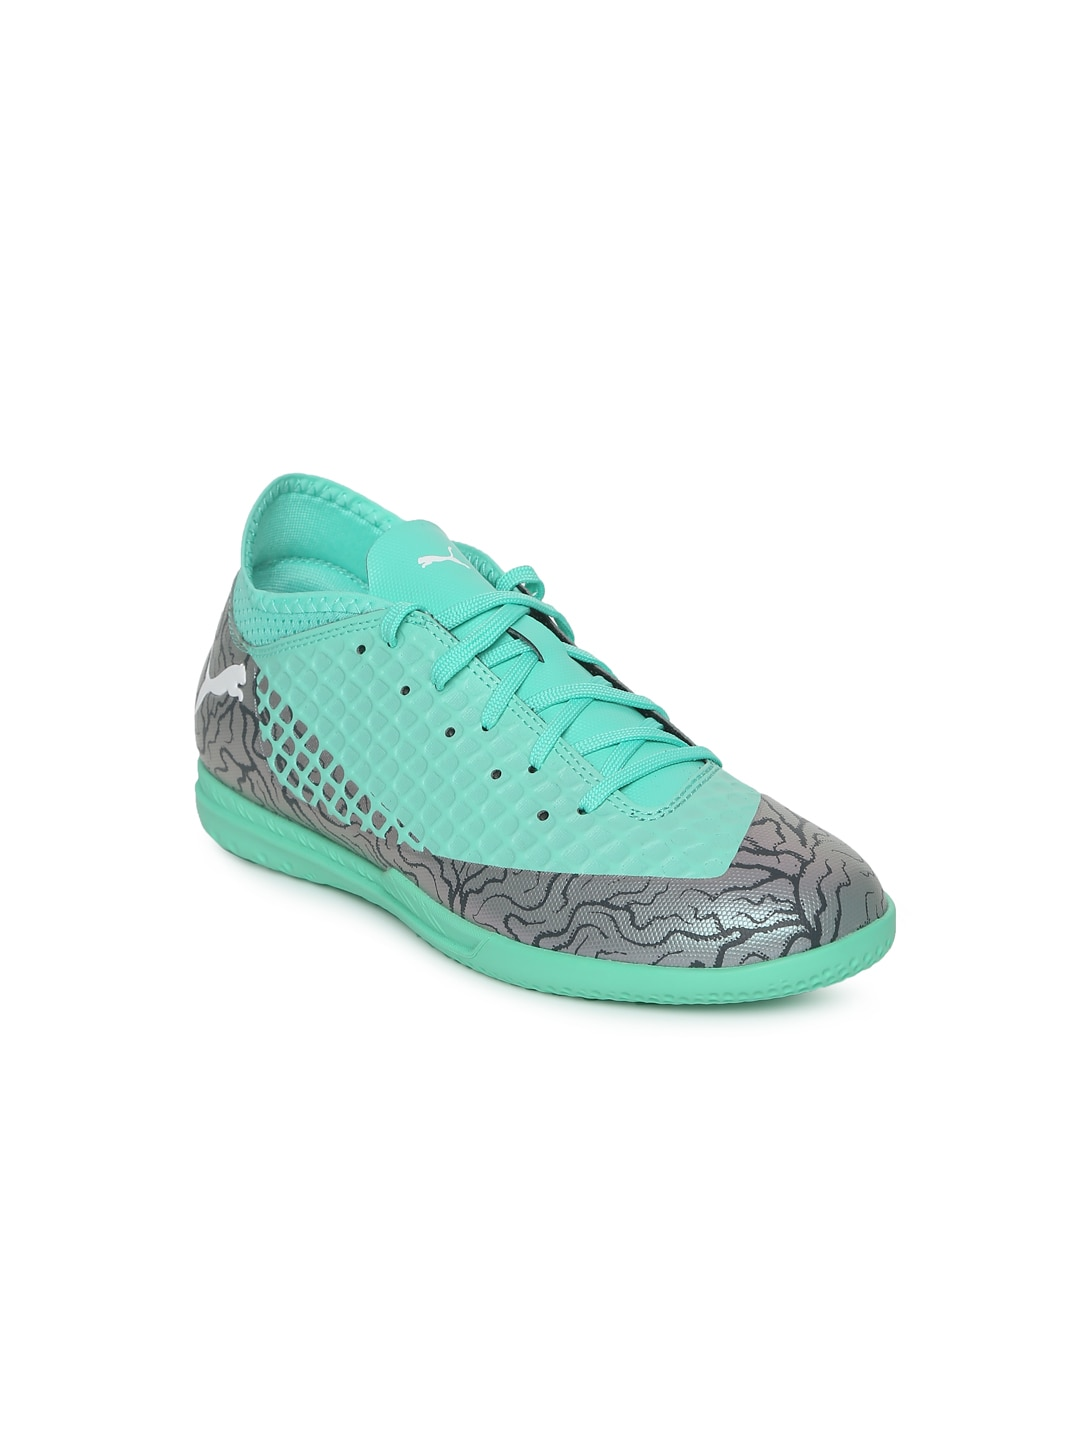 0e78d5ef0617 Boys Sports Shoes - Buy Sports Shoes For Kids Online in India